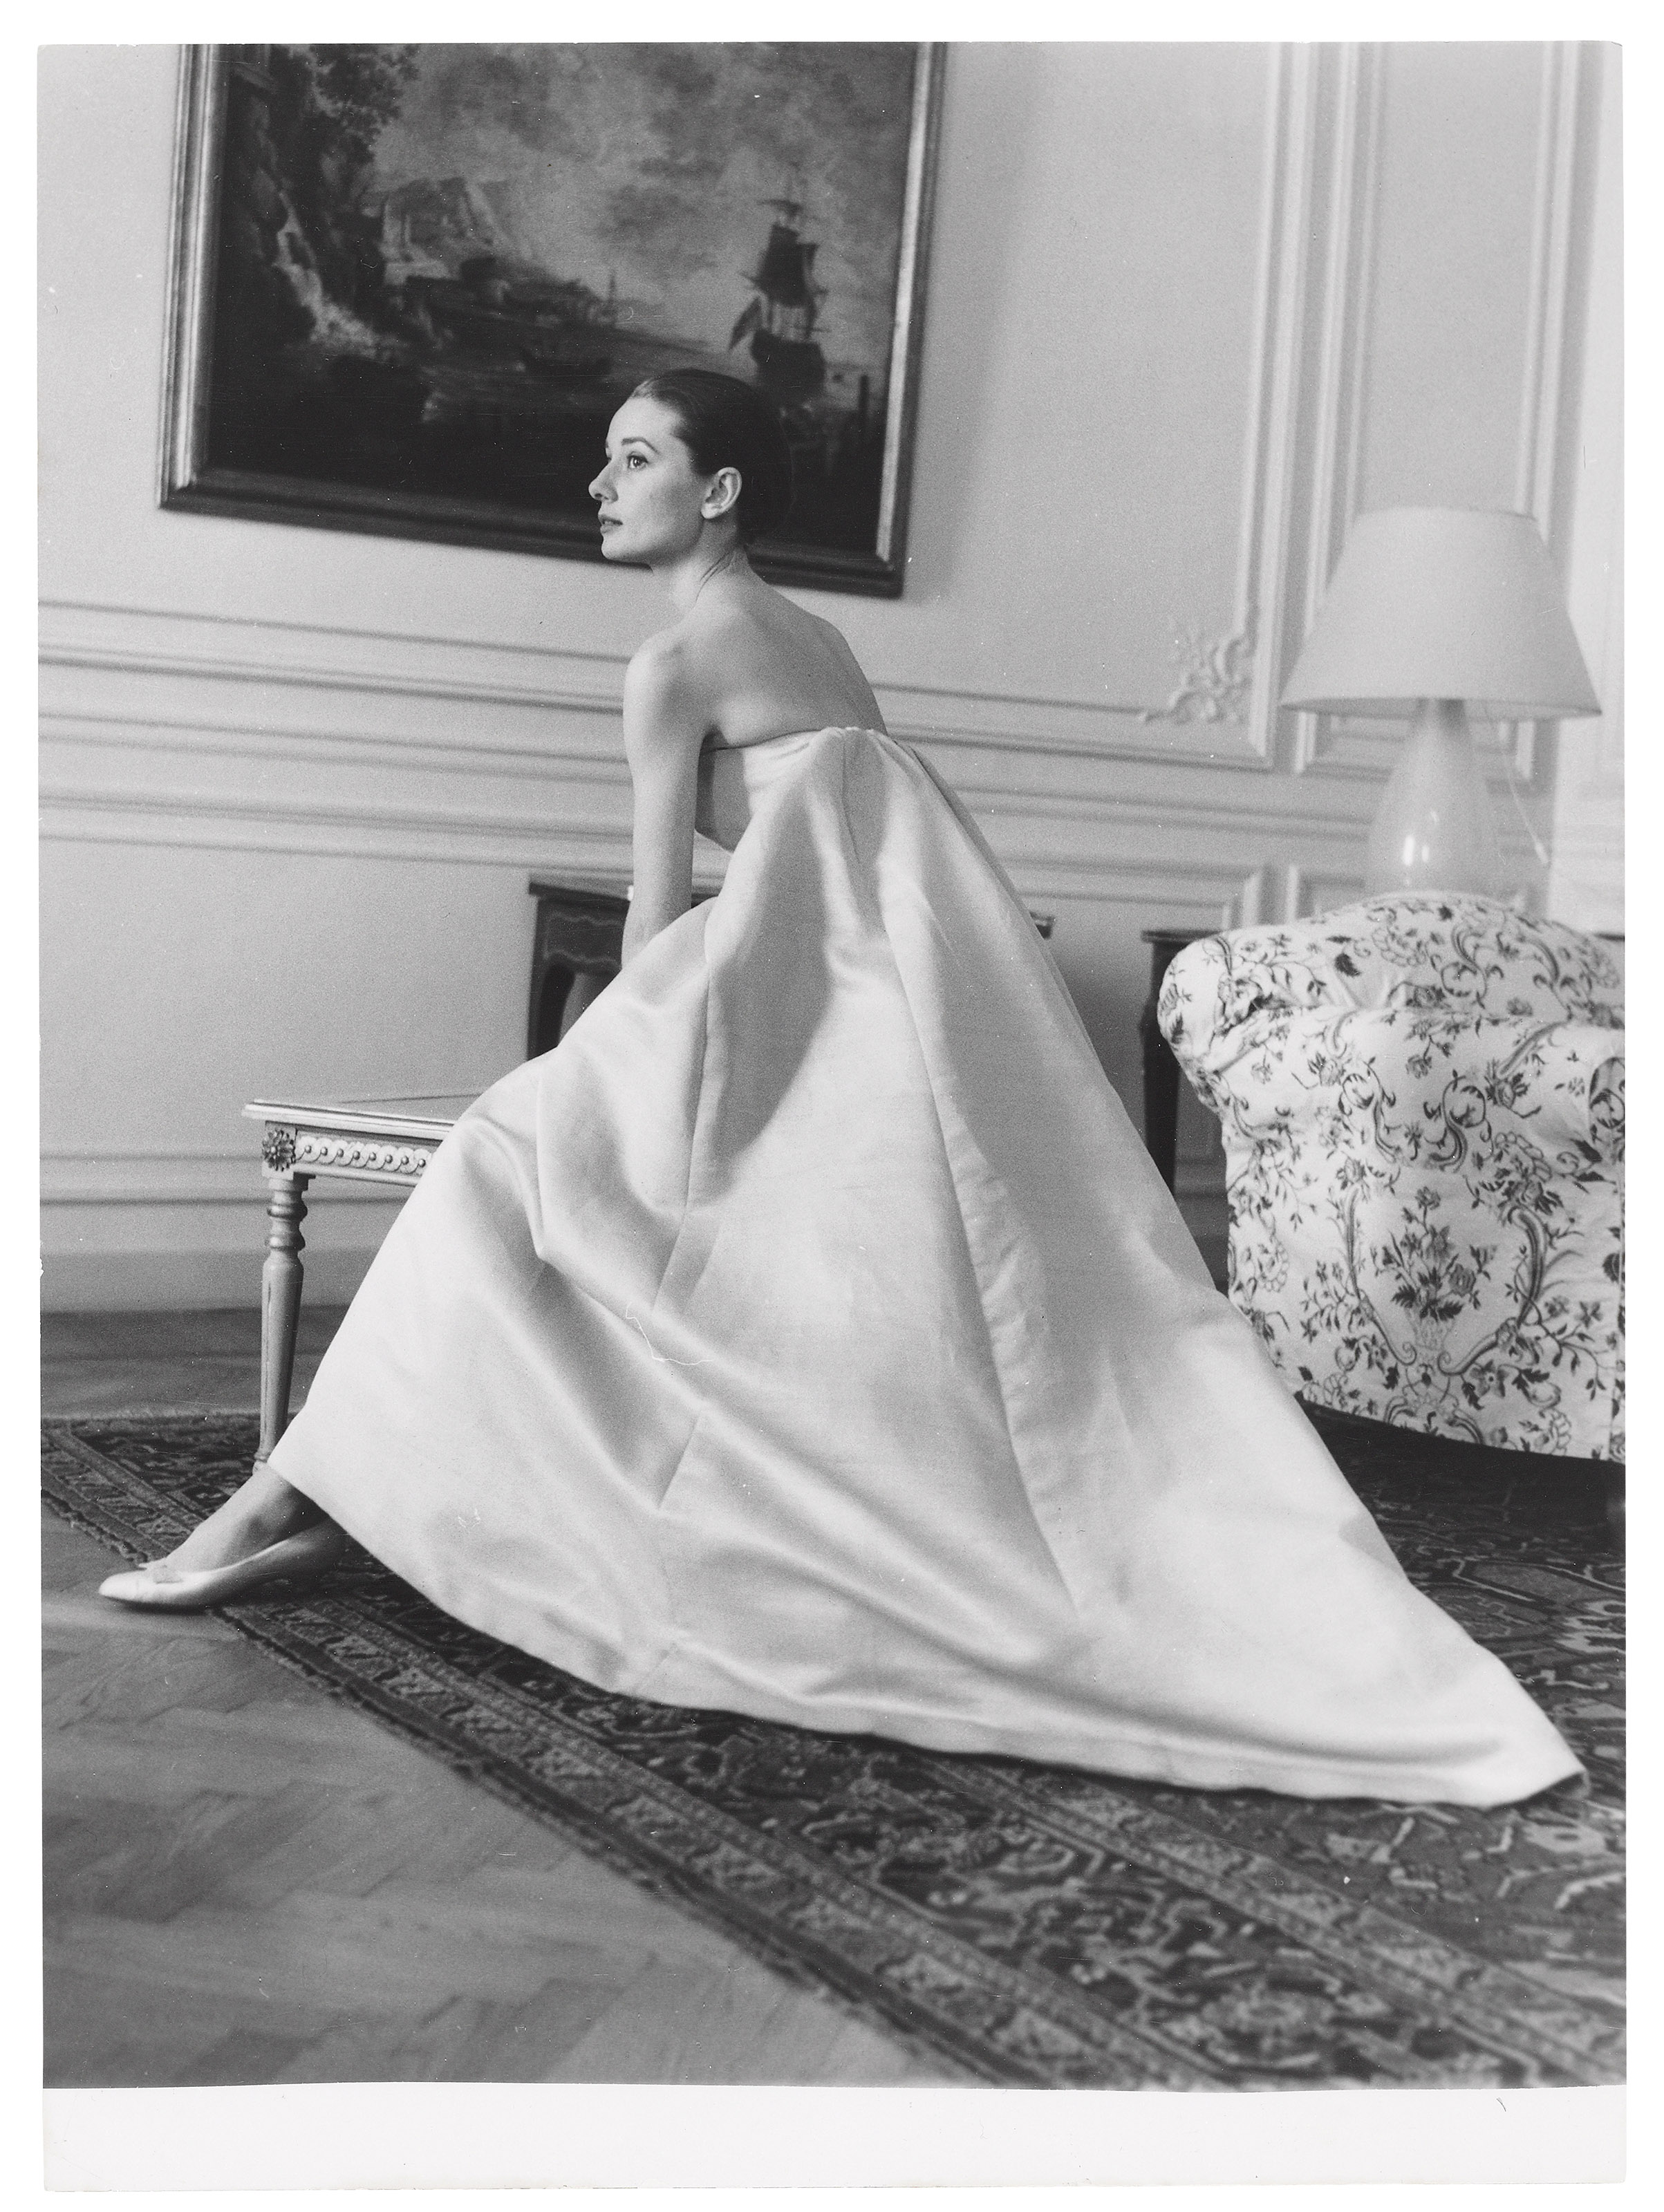 Audrey Hepburn at a dress fitting with Hubert de Givenchy for the premiere of The Nun's Story, circa 1959